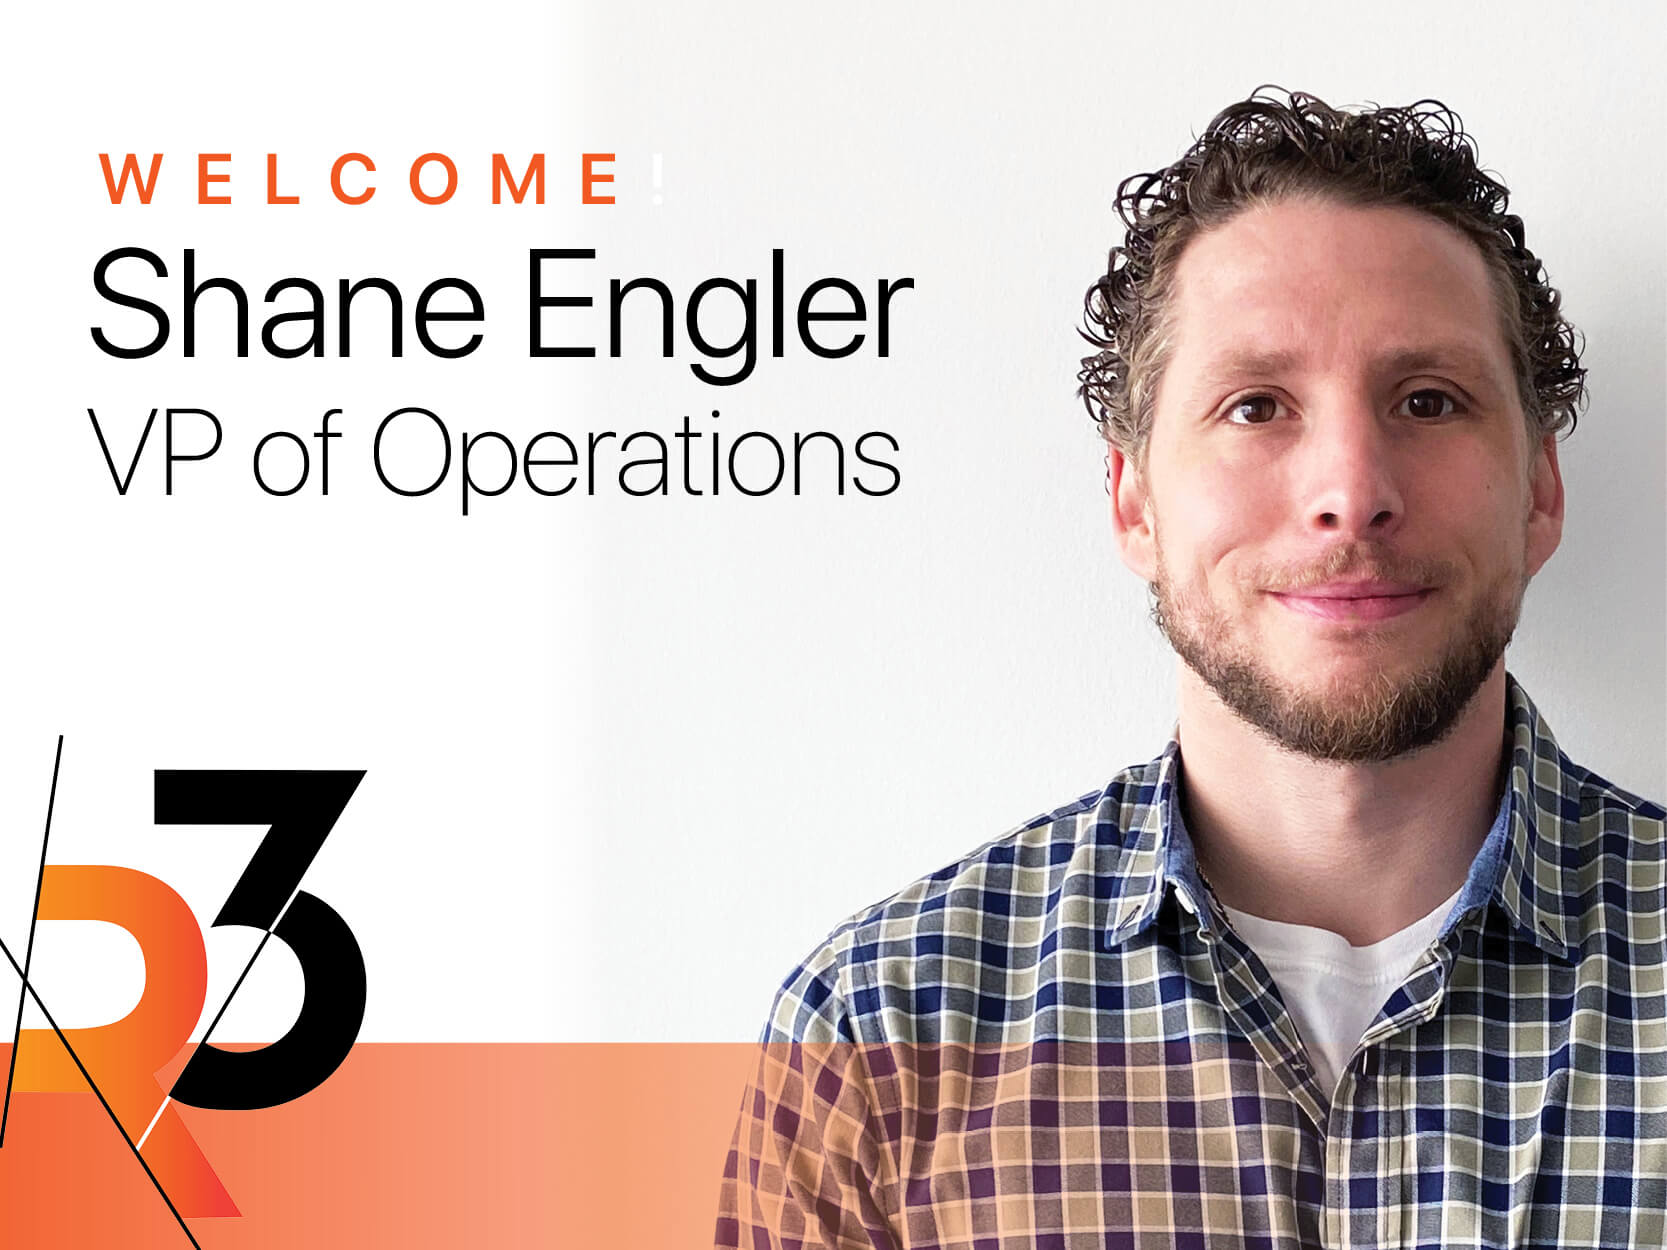 R3 Welcomes New VP of Operations